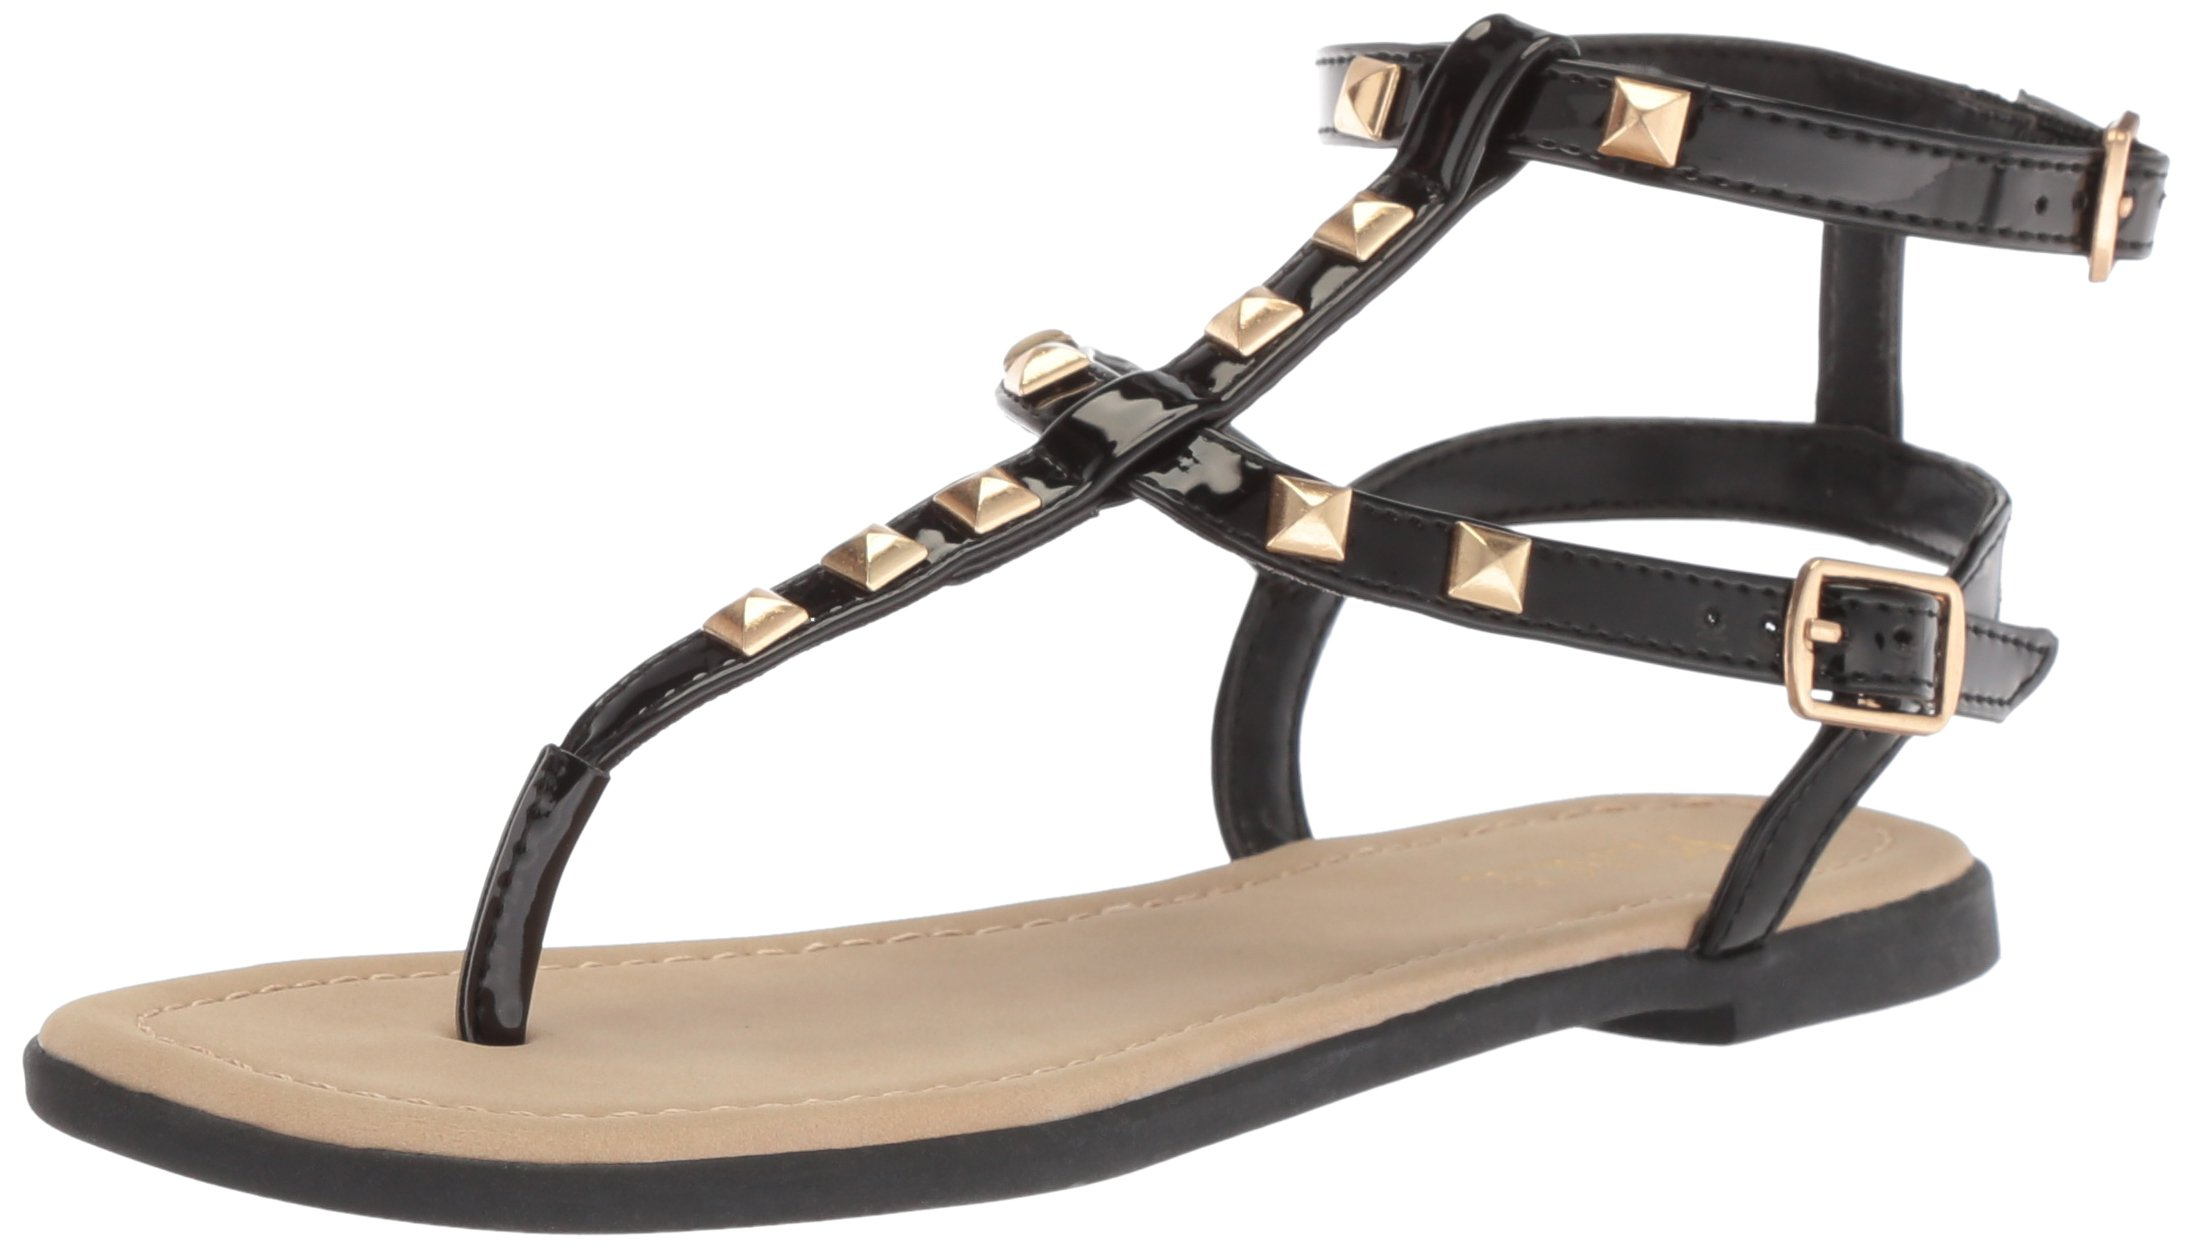 The Children's Place Girls' BG Stud Zahara Flat Sandal, Black, Youth 4 Medium US Big Kid by The Children's Place (Image #1)